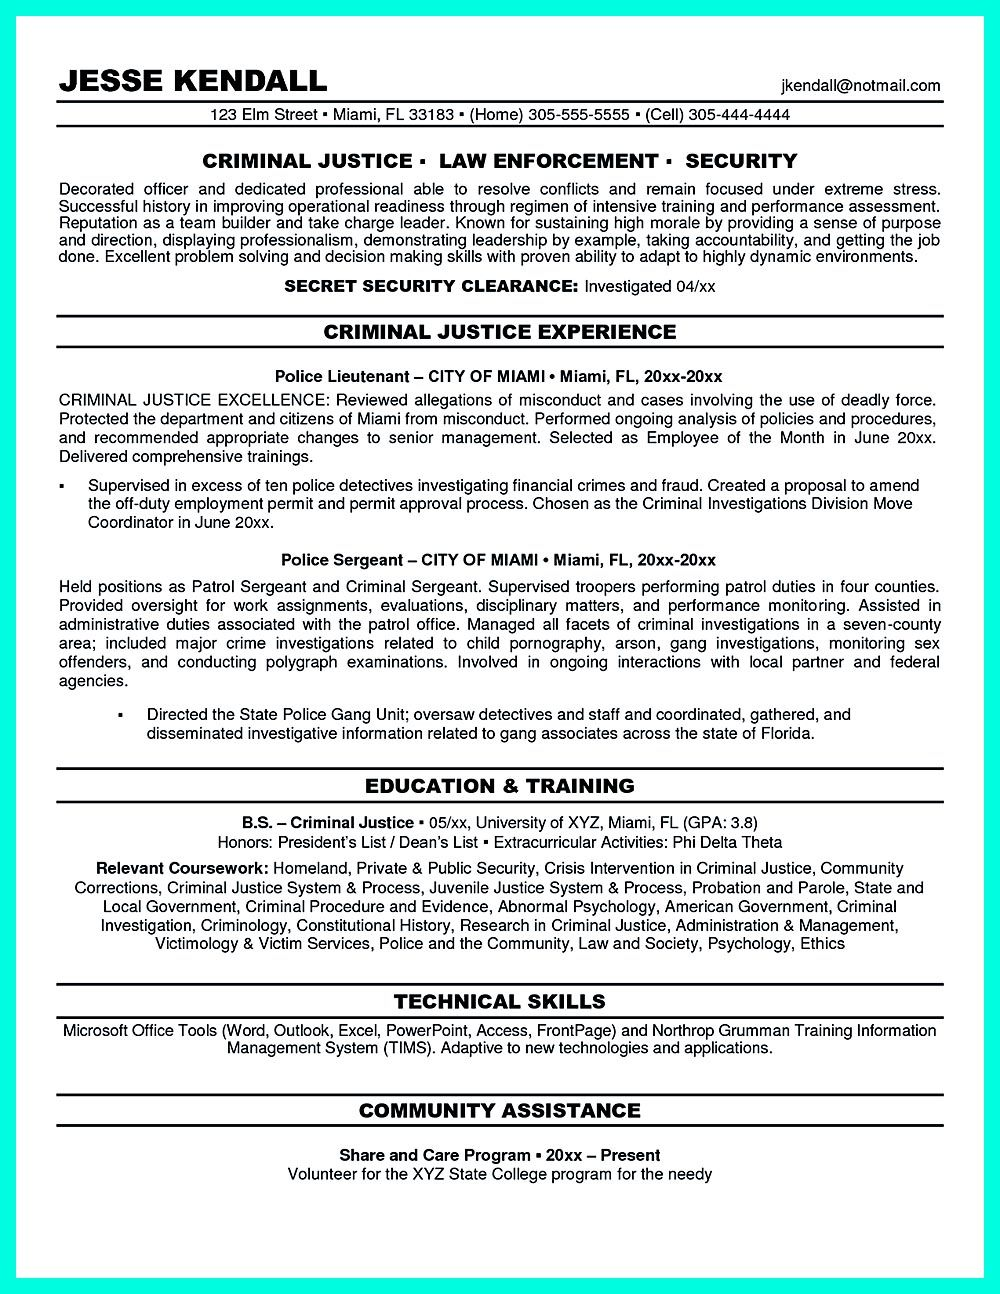 Best Criminal Justice Resume Collection From Professionals Resume Objective Examples Resume Objective Resume Examples